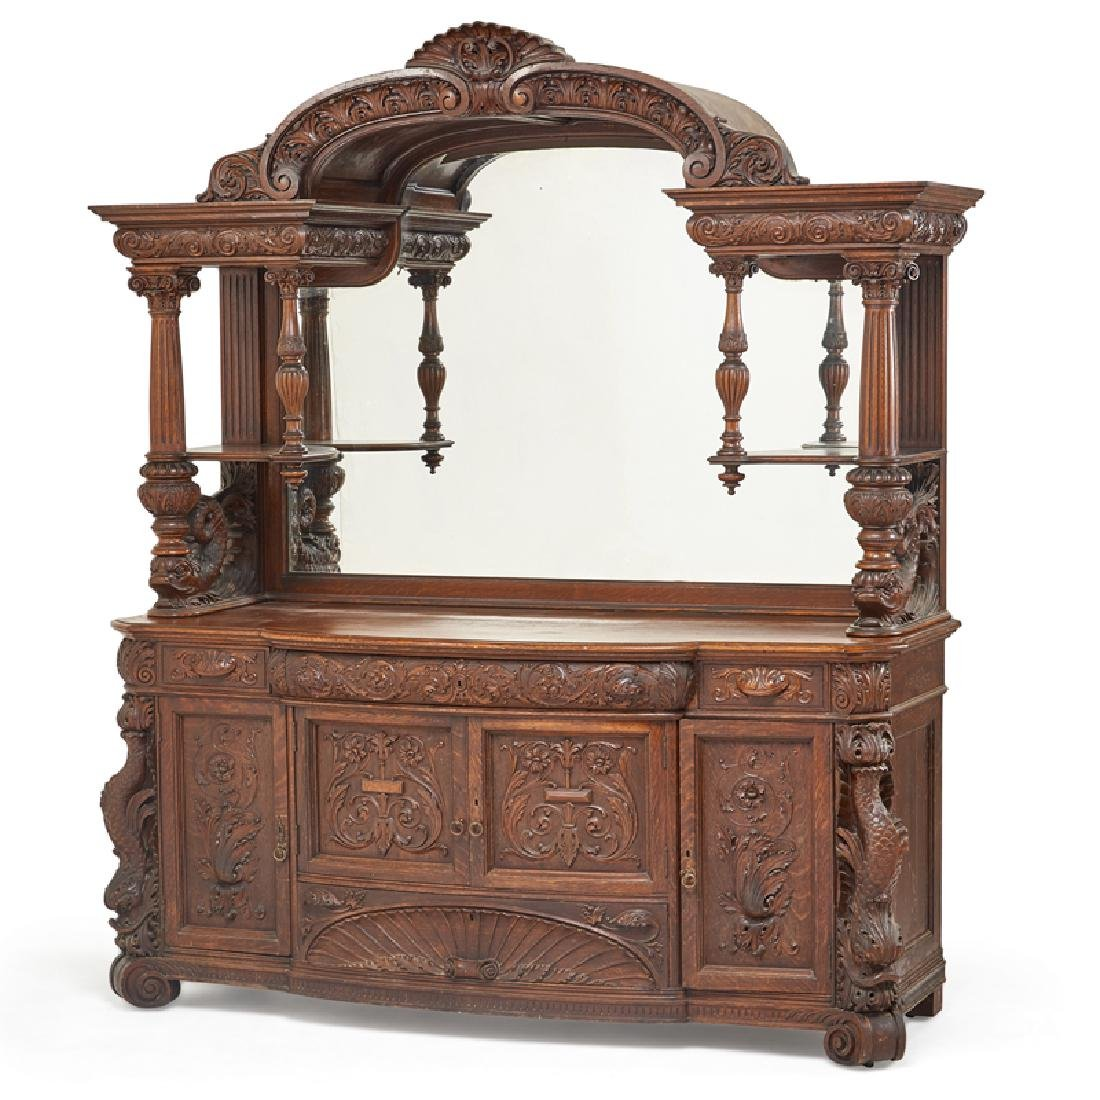 STYLE OF HORNER CARVED OAK BUFFET